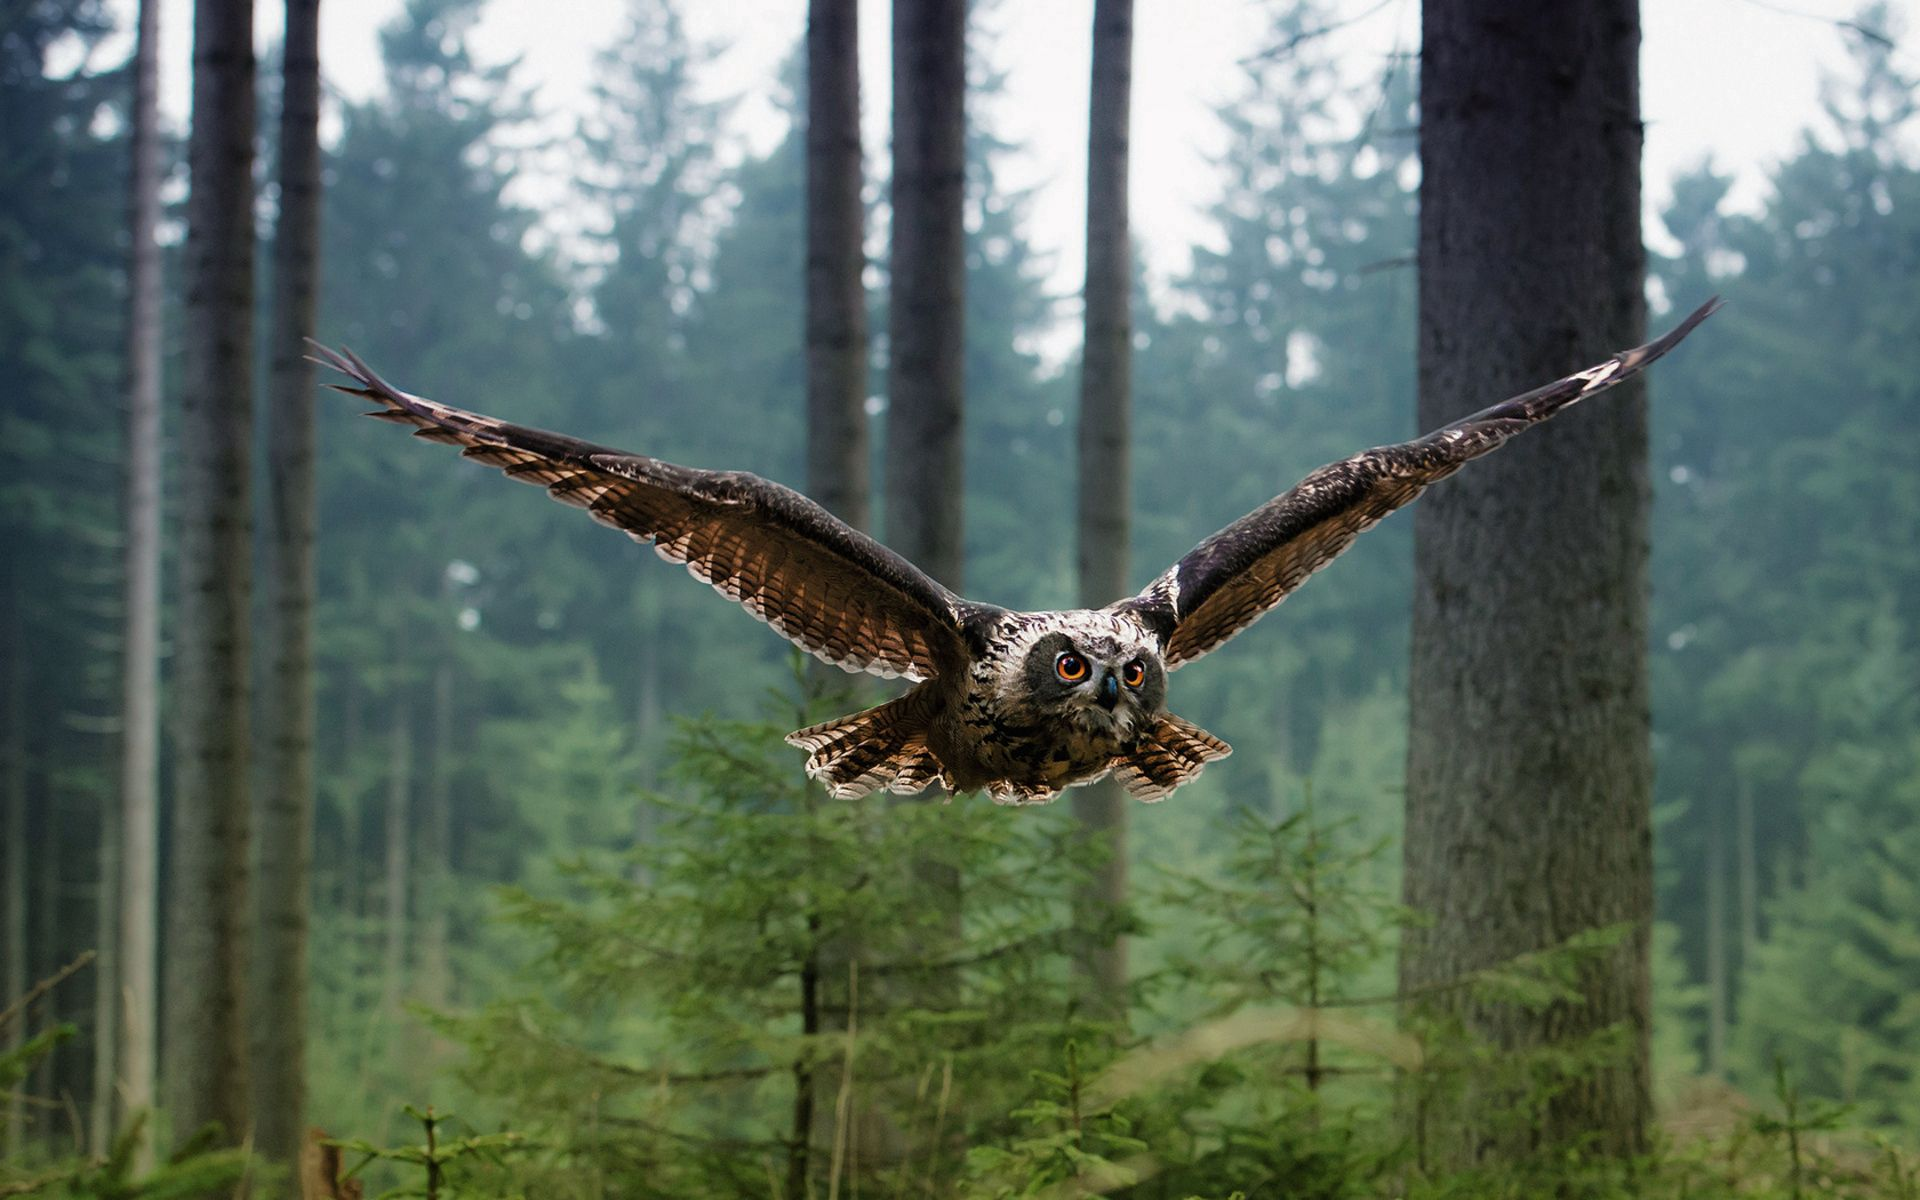 90083 download wallpaper Animals, Owl, Bird, Flight, Predator, Forest, Trees screensavers and pictures for free